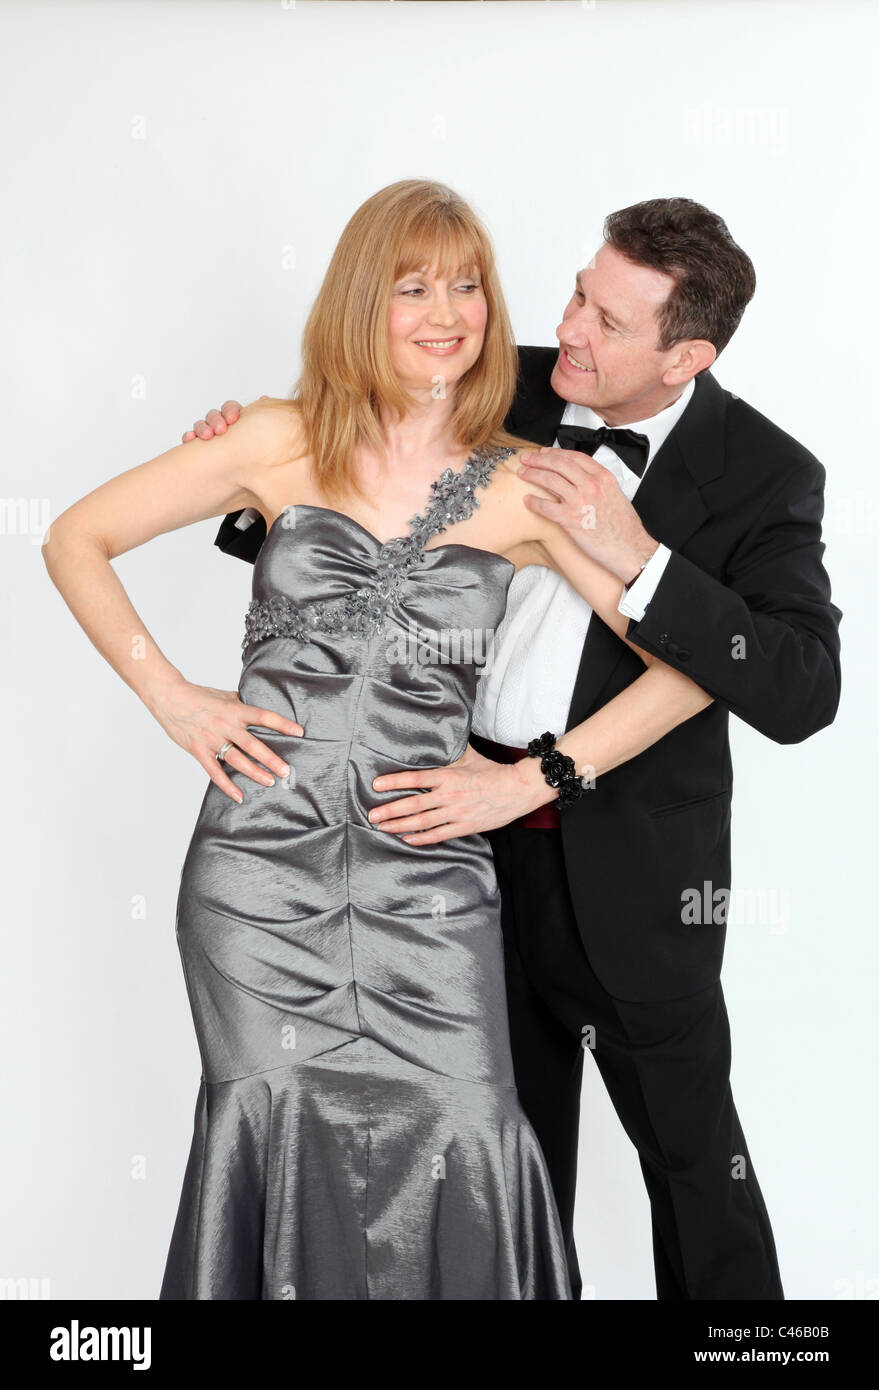 Woman wearing long formal dress hands on hips, man hands on her shoulders, both looking at each other with cheeky - Stock Image